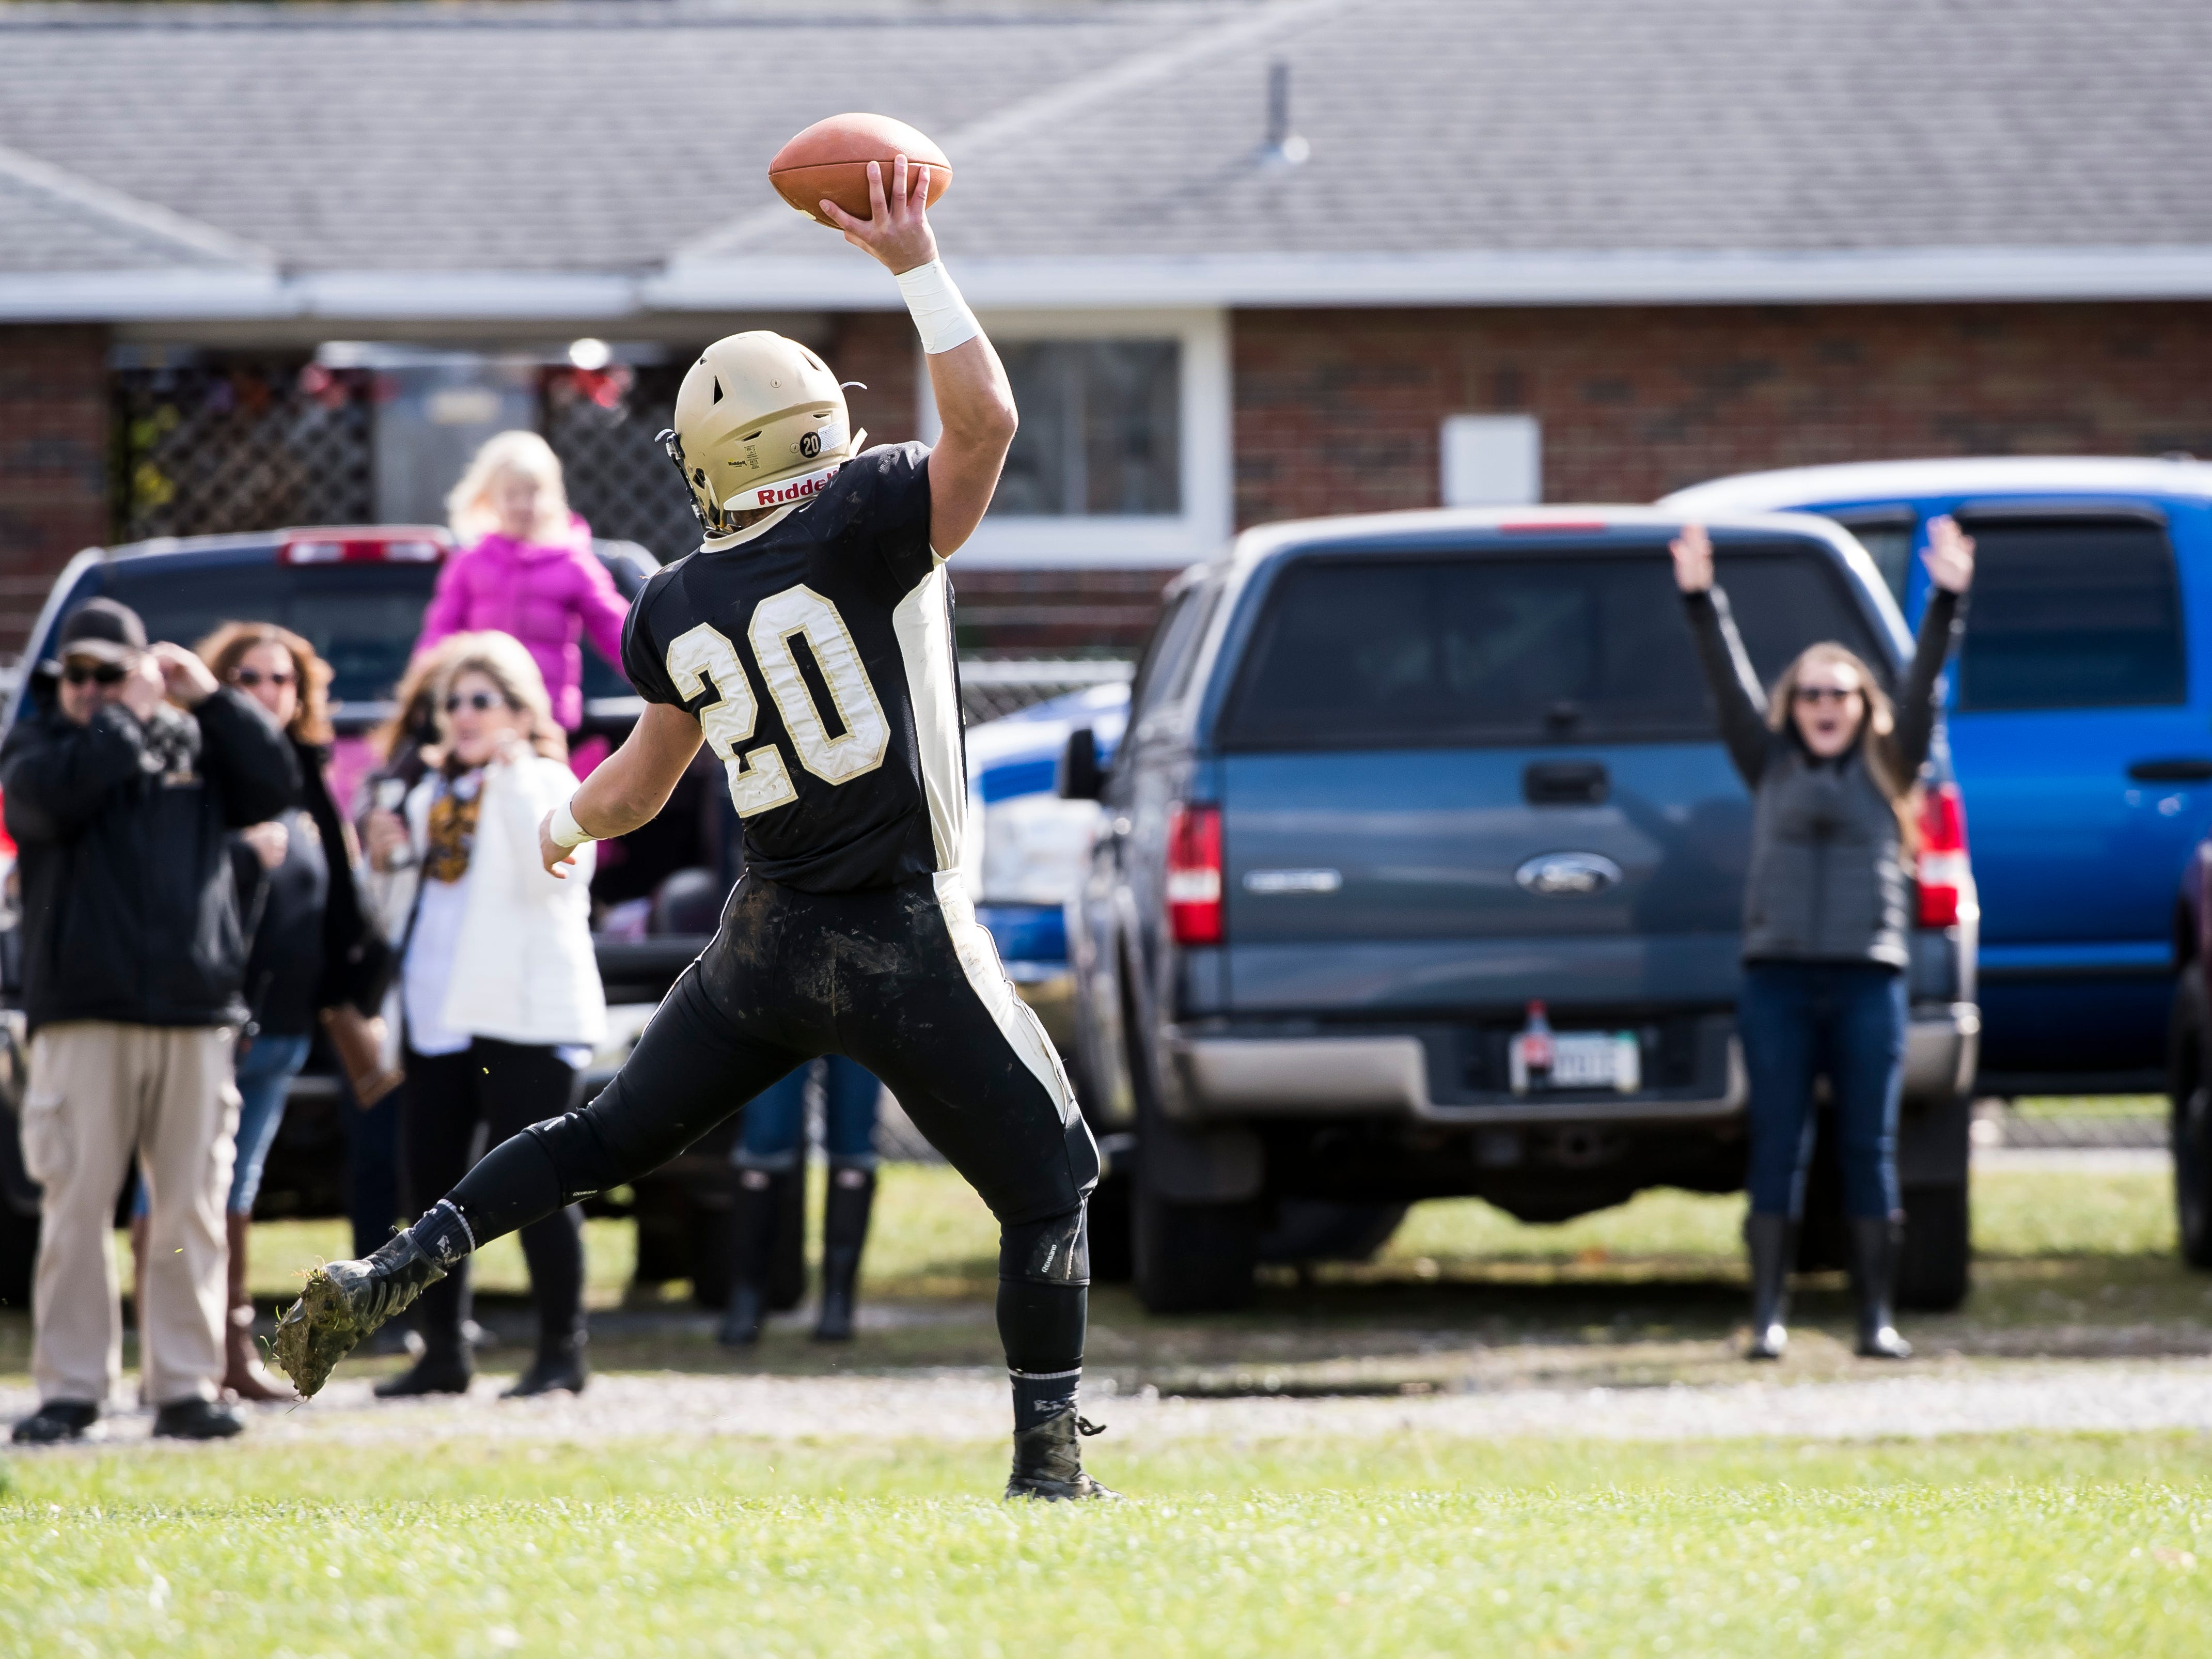 Delone Catholic's Tyler Monto celebrates in the end zone after scoring a touchdown in a District III Class 2A semifinal game against Upper Dauphin on Saturday, November 3, 2018. The Squires won 48-23.